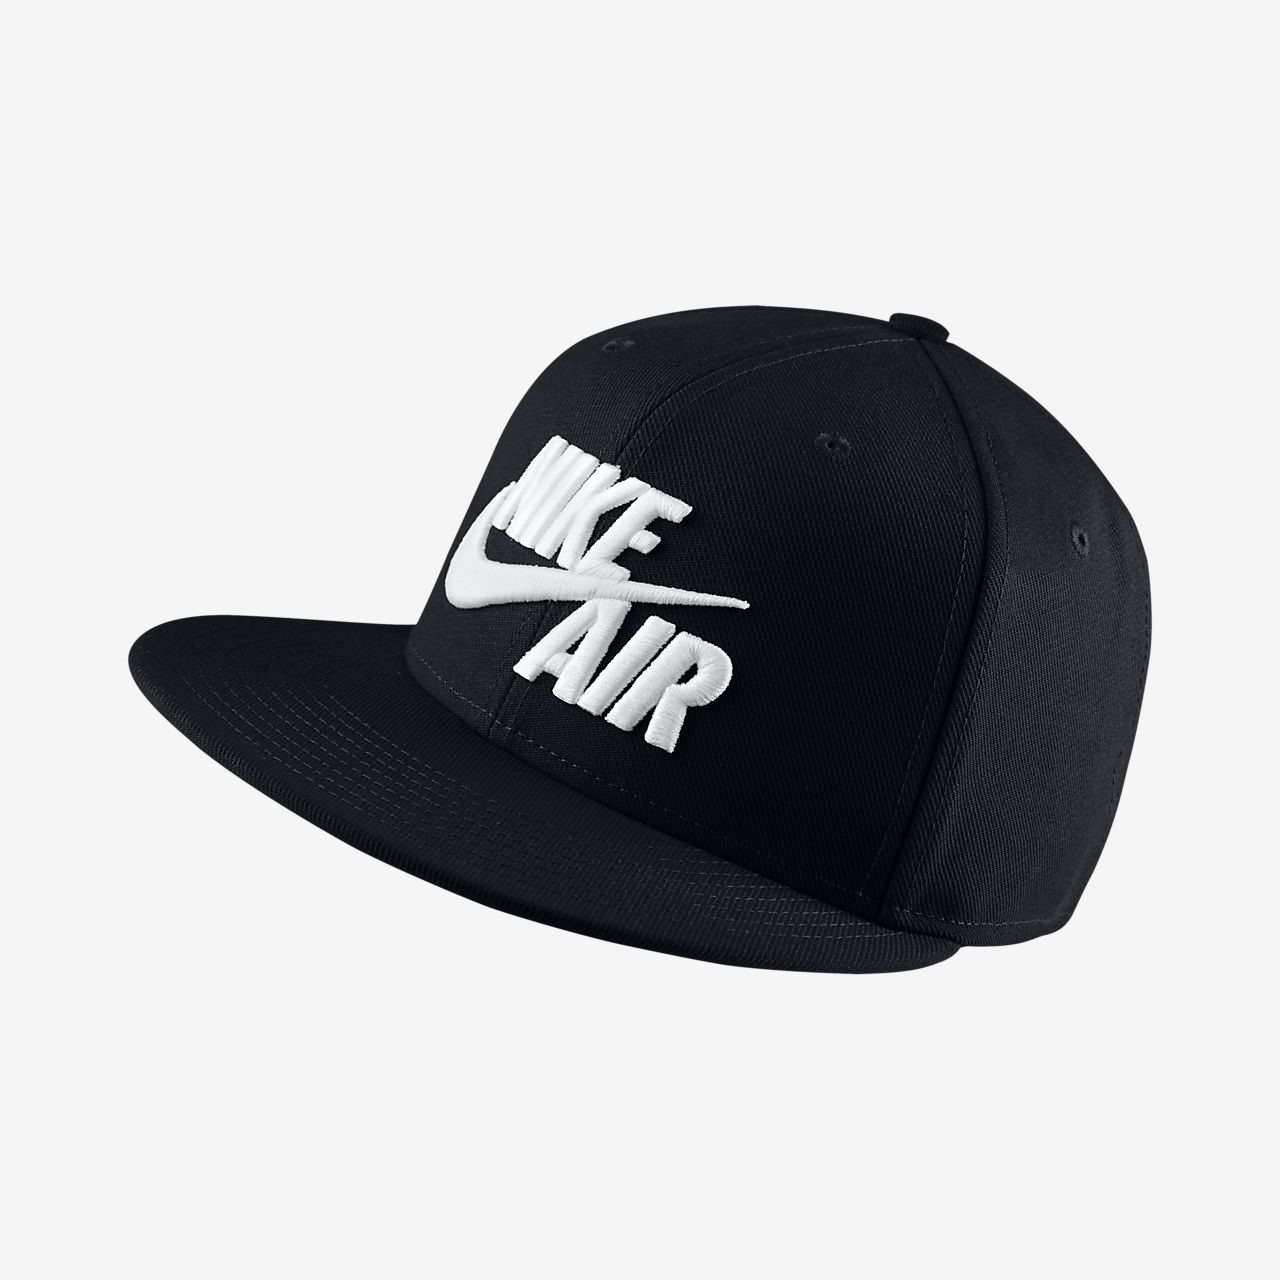 Nike Air baseball cap - Black Nike 6LnML